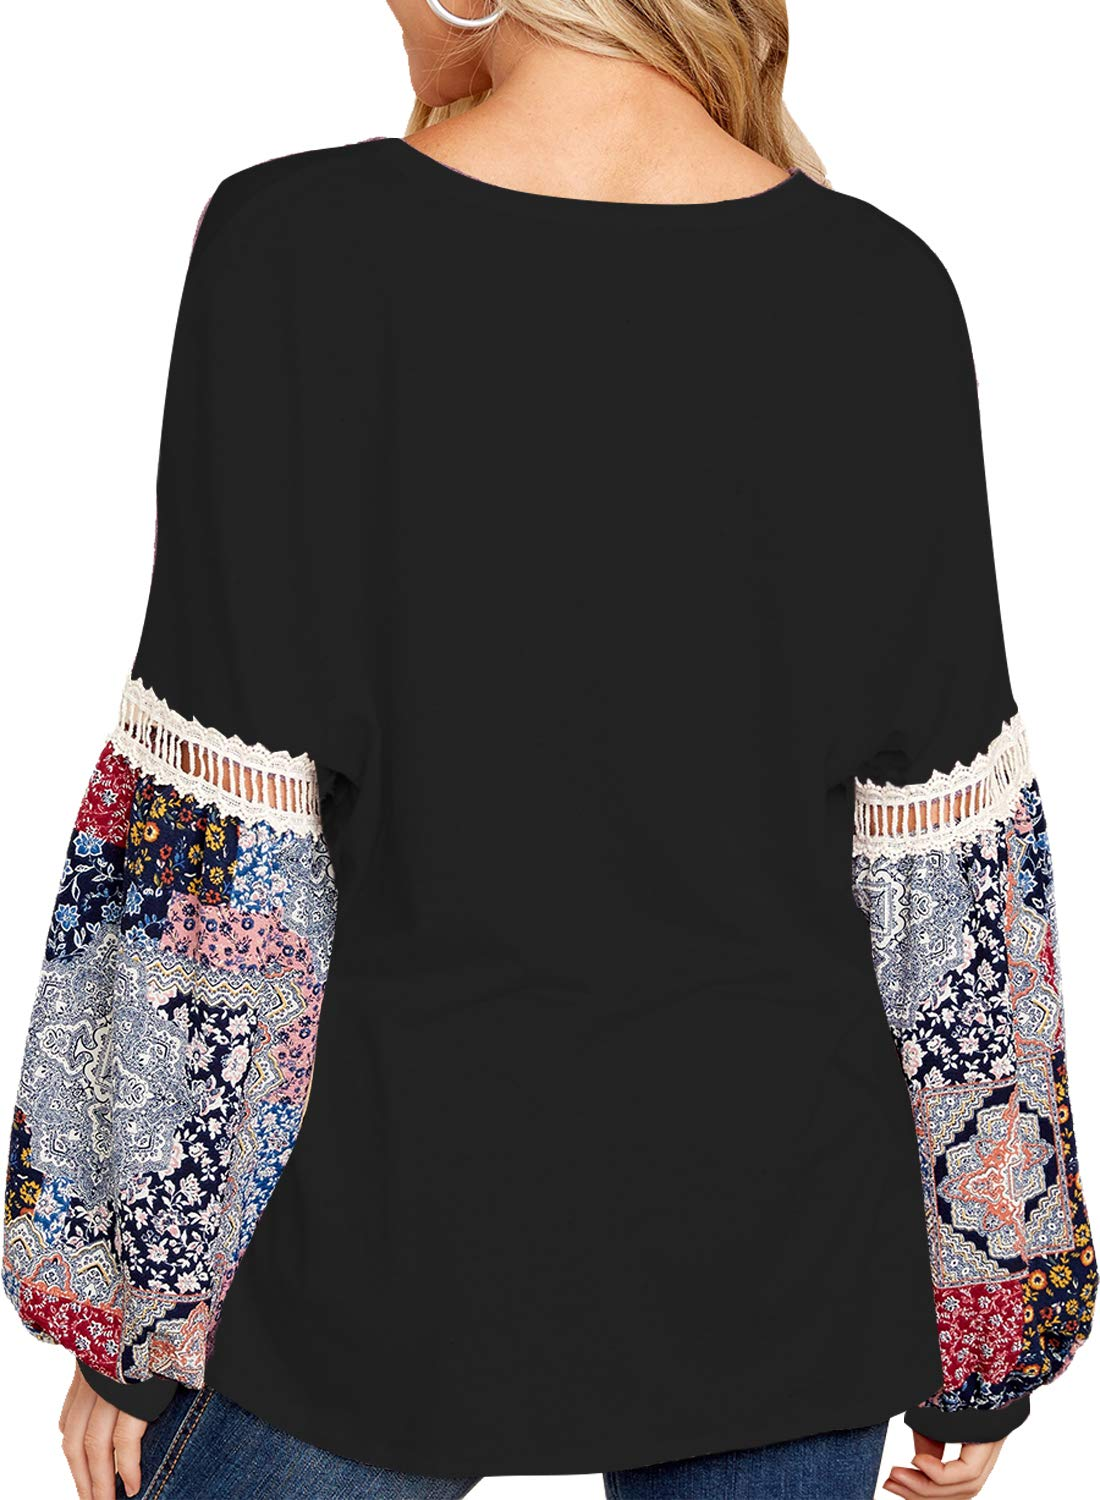 FARYSAYS Women's Autumn V Neck Long Sleeve Floral Patchwork Loose Fit T-Shirts Tops Blouse Black Medium by FARYSAYS (Image #2)